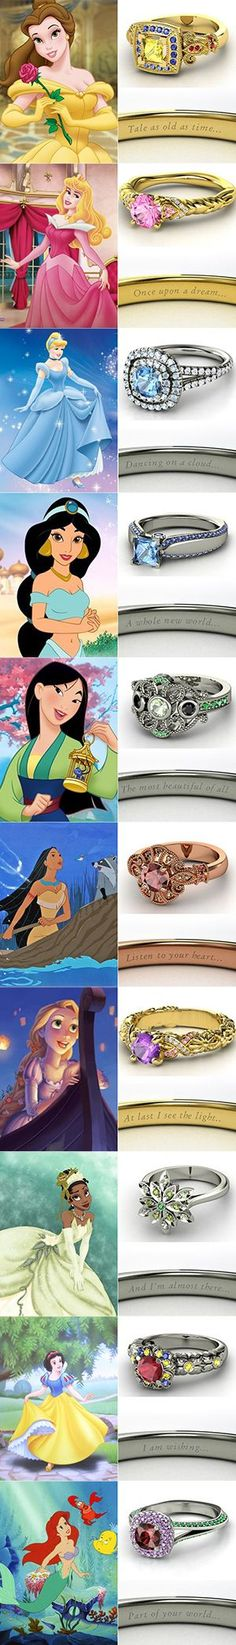 So the criticizing part of me wanted to say how dumb Disney Engagement rings were, but then I had a thought, these are the infamous love stories of our time... just like Romeo Juliette or Mider Etain, so this is actually very romantic and deep to get a ring based off your favorite love story.